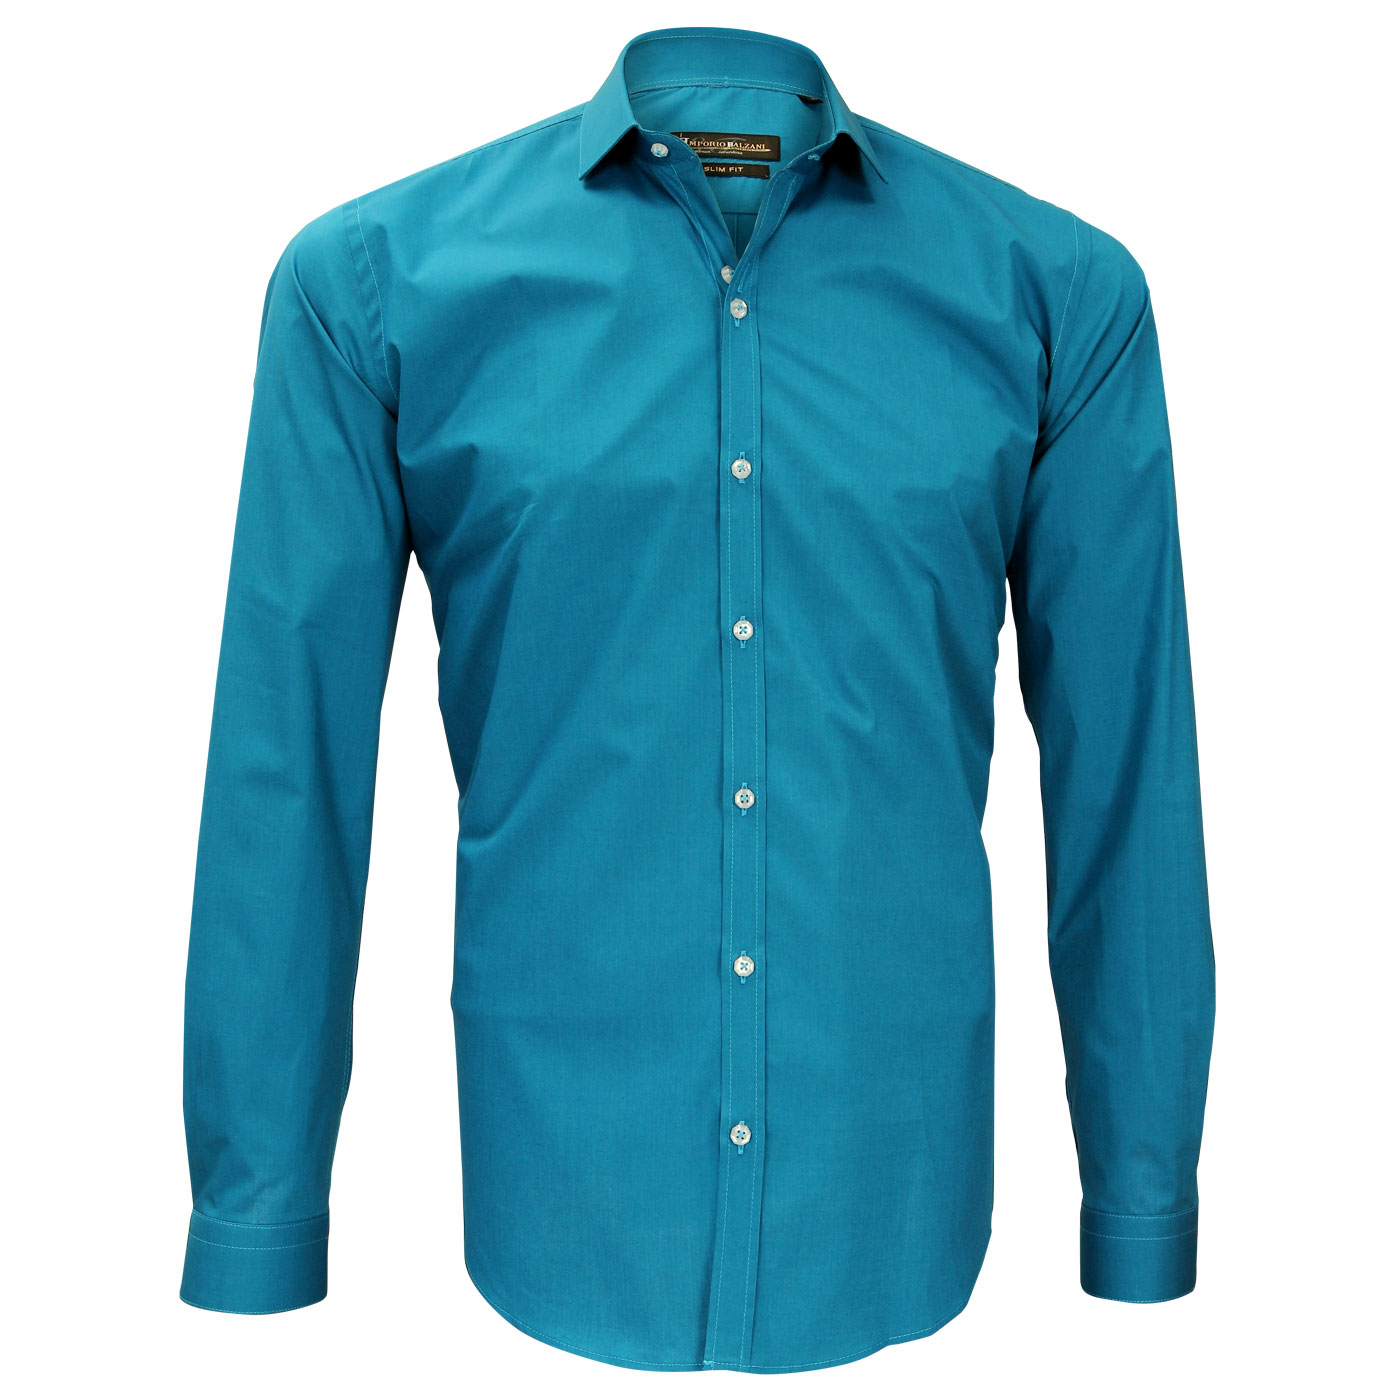 Sizing Guide for your man's shirt: the good advice of WebMenshirts